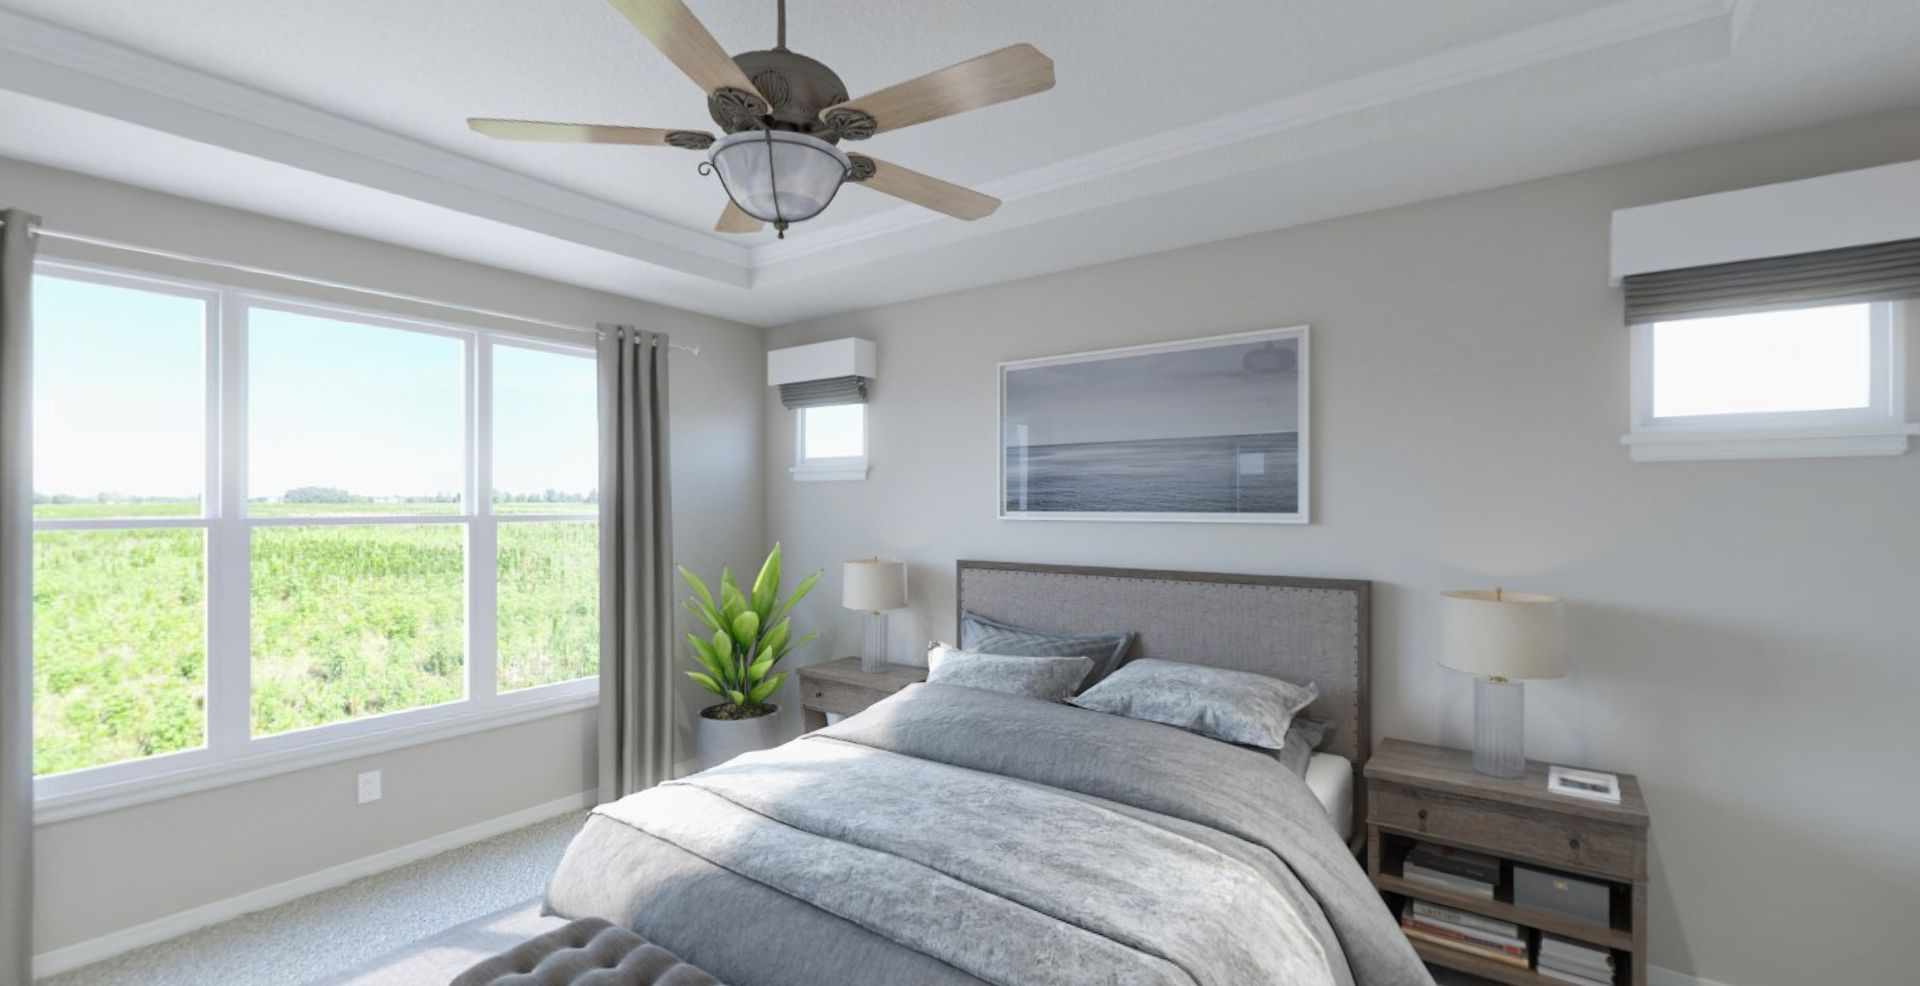 Bedroom featured in the Cadenza By Olthof Homes in Indianapolis, IN